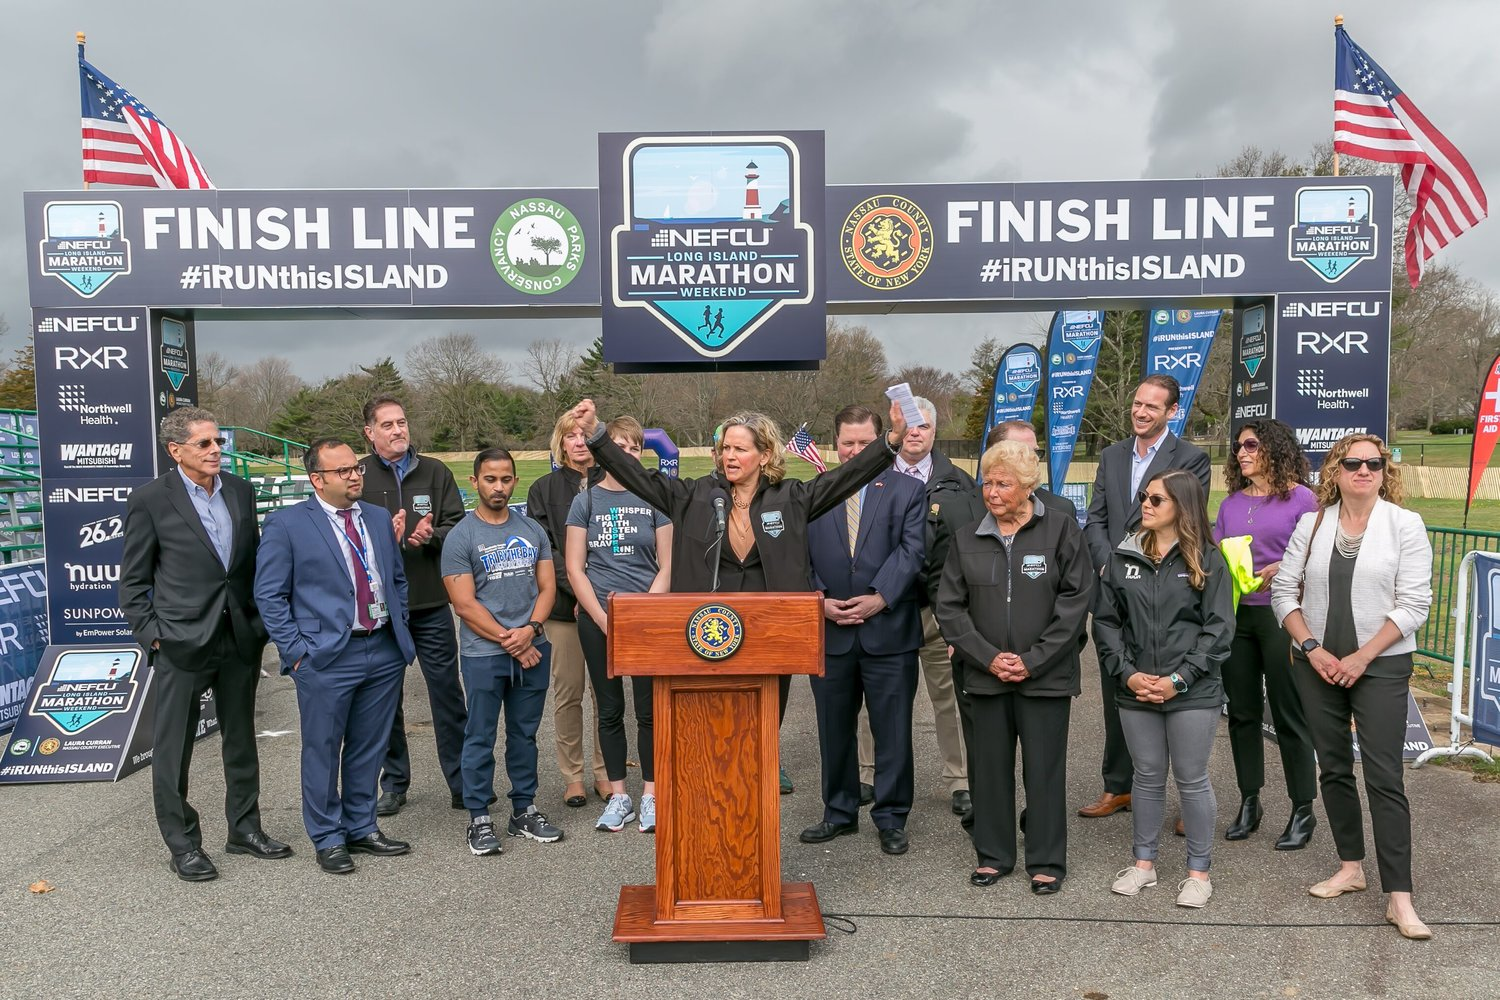 Nassau County Executive Laura Curran visited the starting line of the NEFCU 2019 Long Island Marathon, named for its new title sponsor, on April 15 to announce the changes made to the course and race weekend.